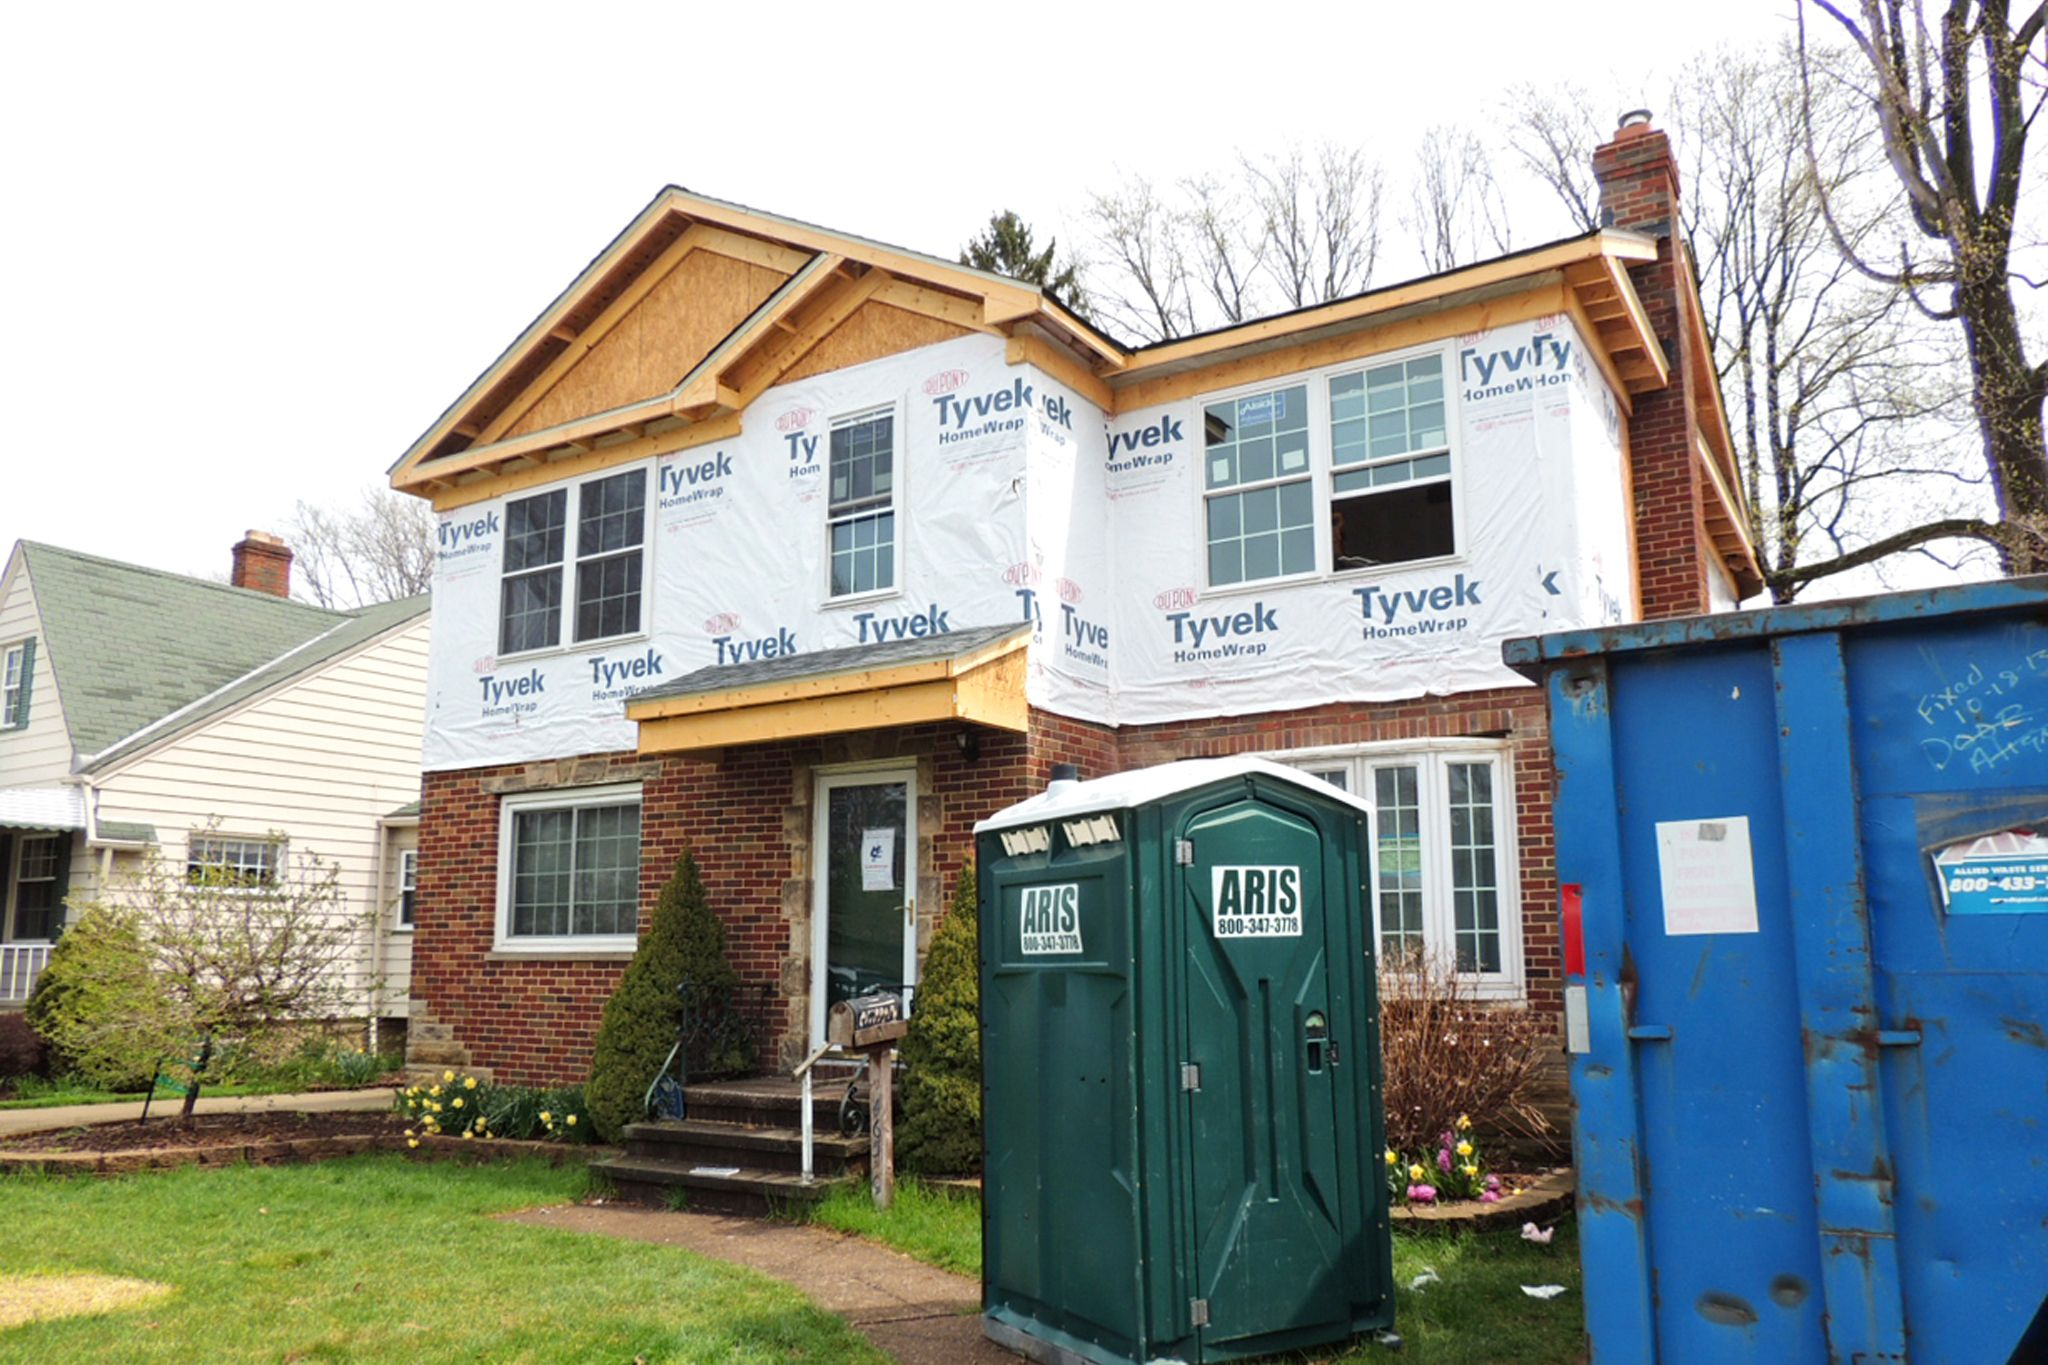 Cleveland&39;s Residential Contractors   Exterior house renovation, Residential contractor, Home ...